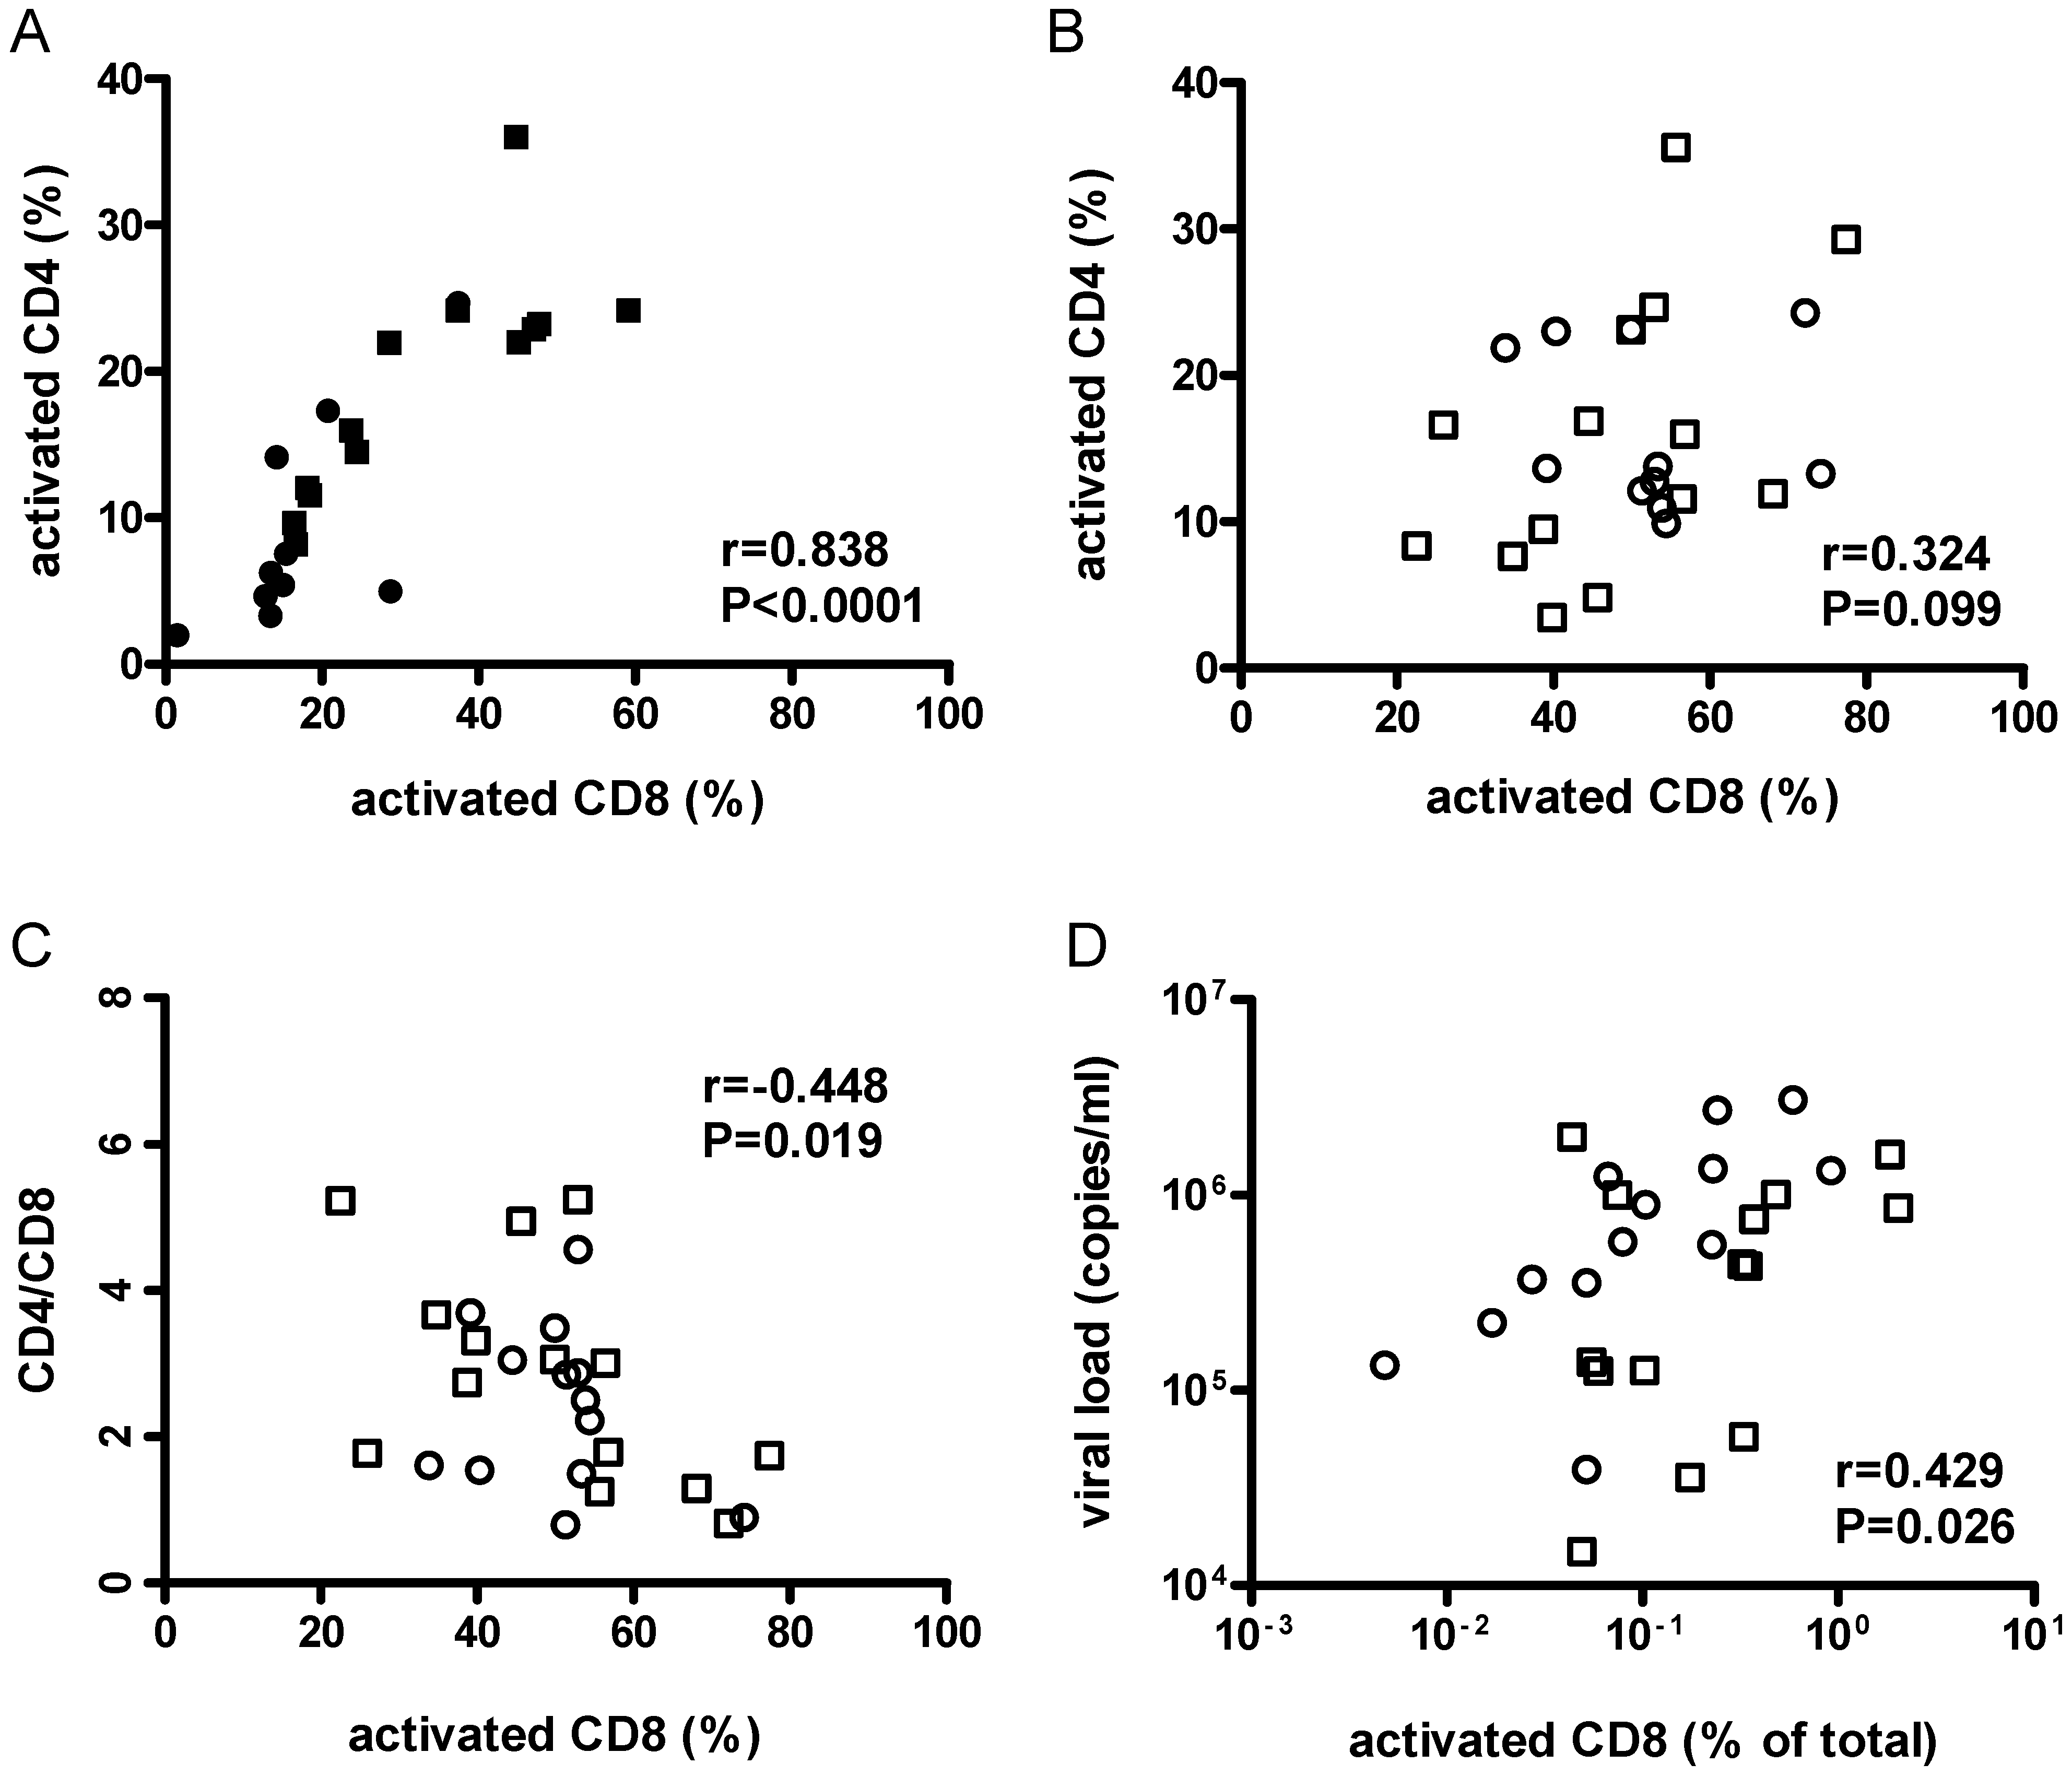 Activation of CD8+ cells was associated with lower CD4+/CD8+ cell ratios and higher viral loads.